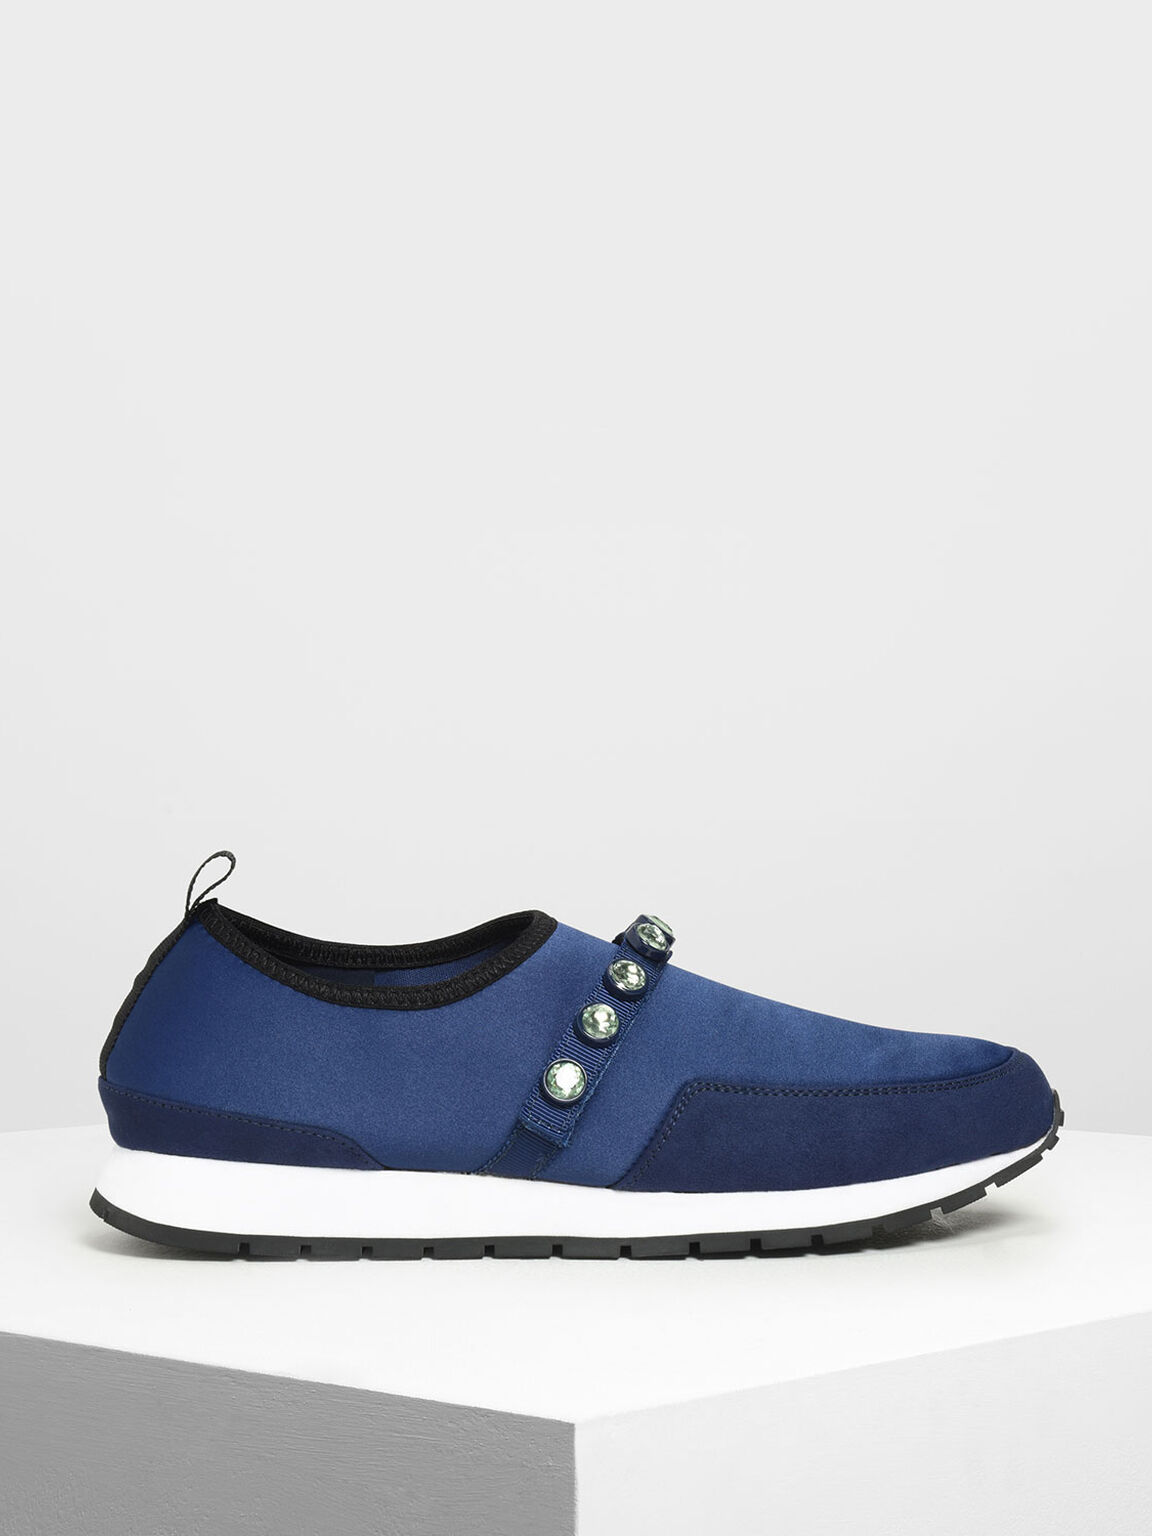 Embellished Slip-On Sneakers, Dark Blue, hi-res